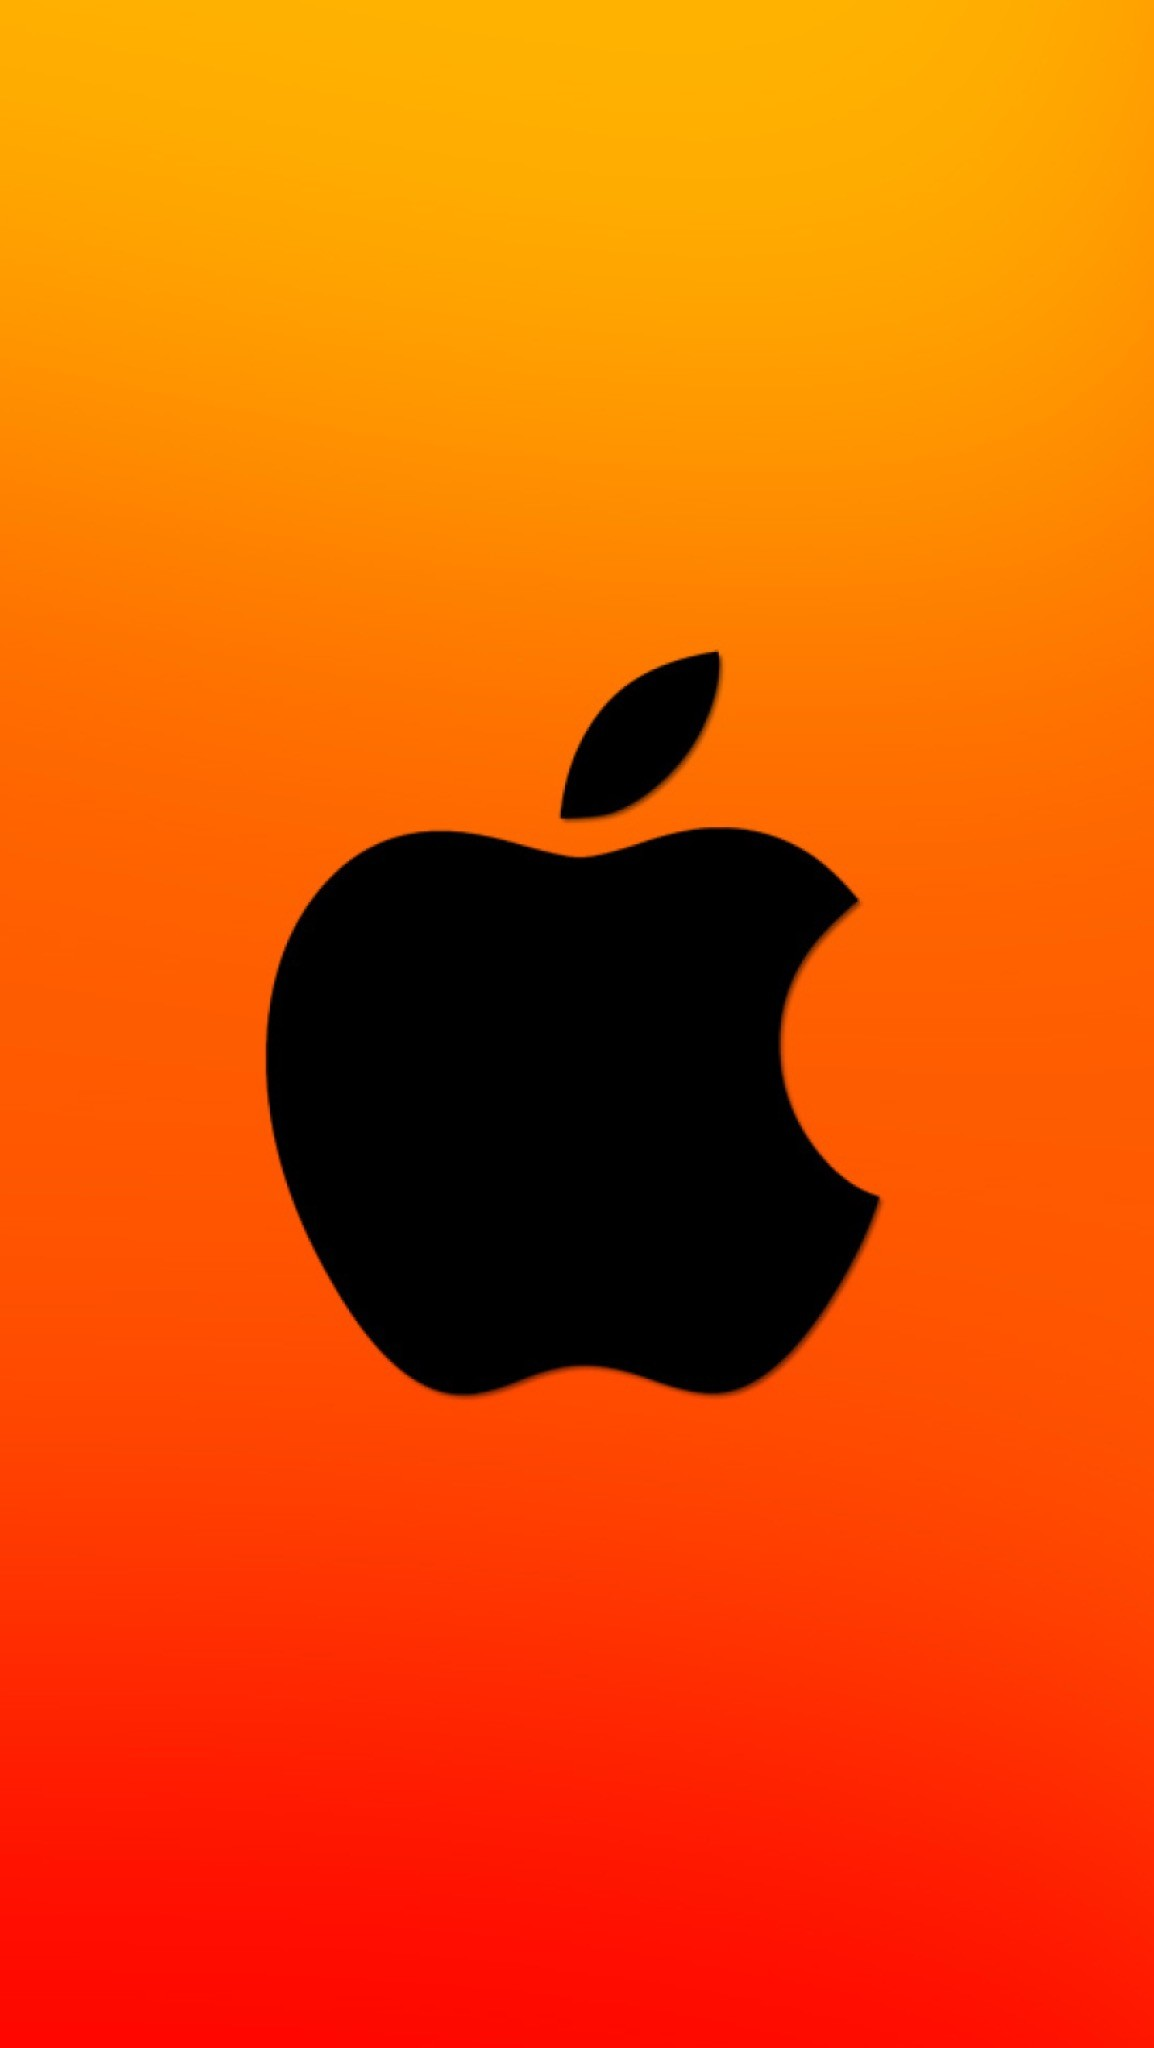 Red Apple Wallpapers (70+ images)